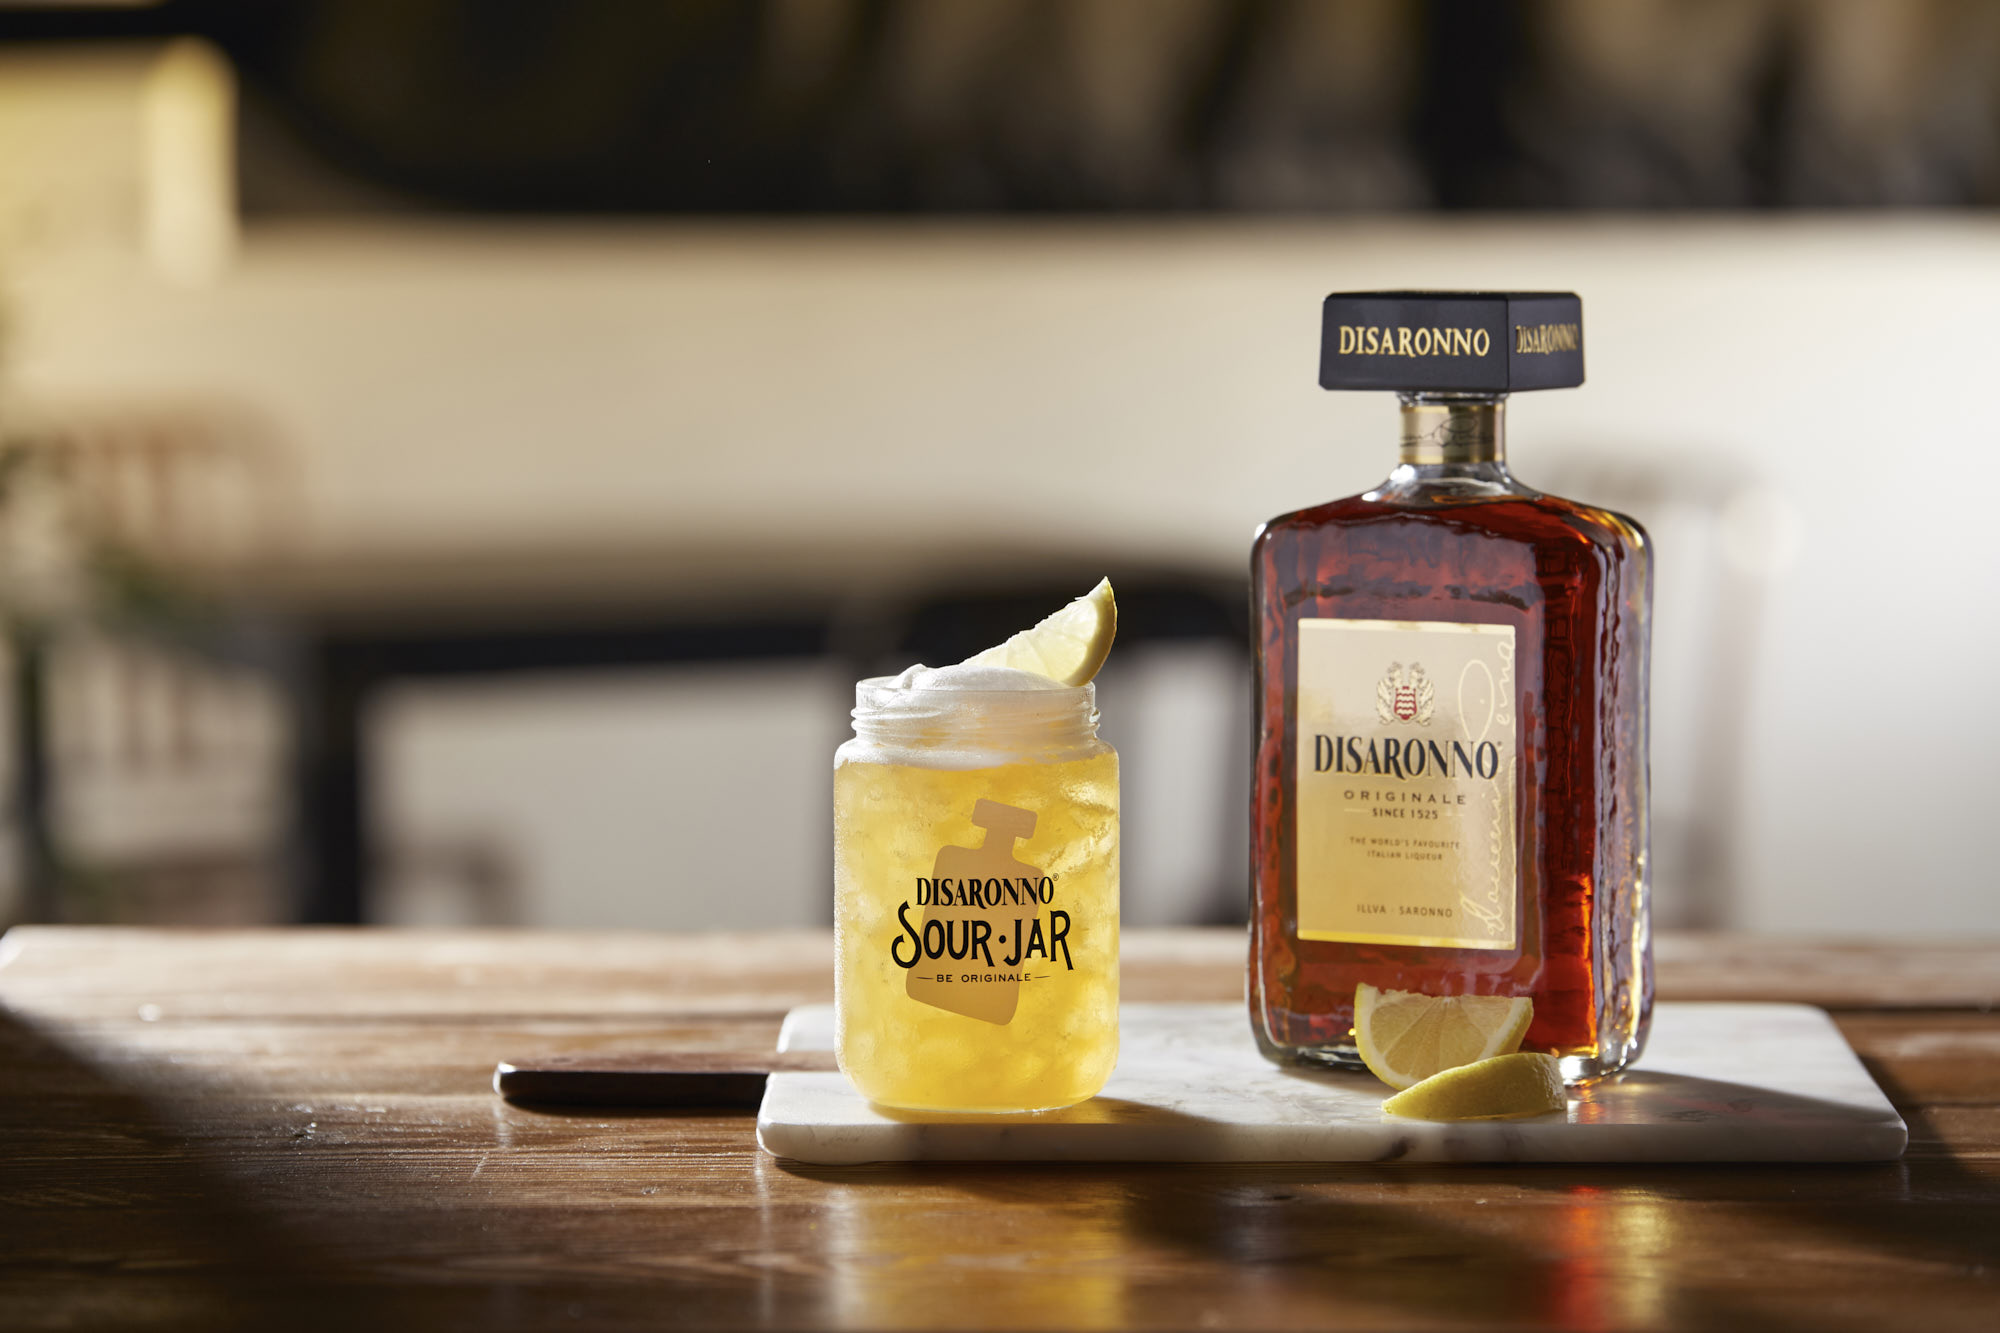 Disaronno_BeOriginale0312.jpg